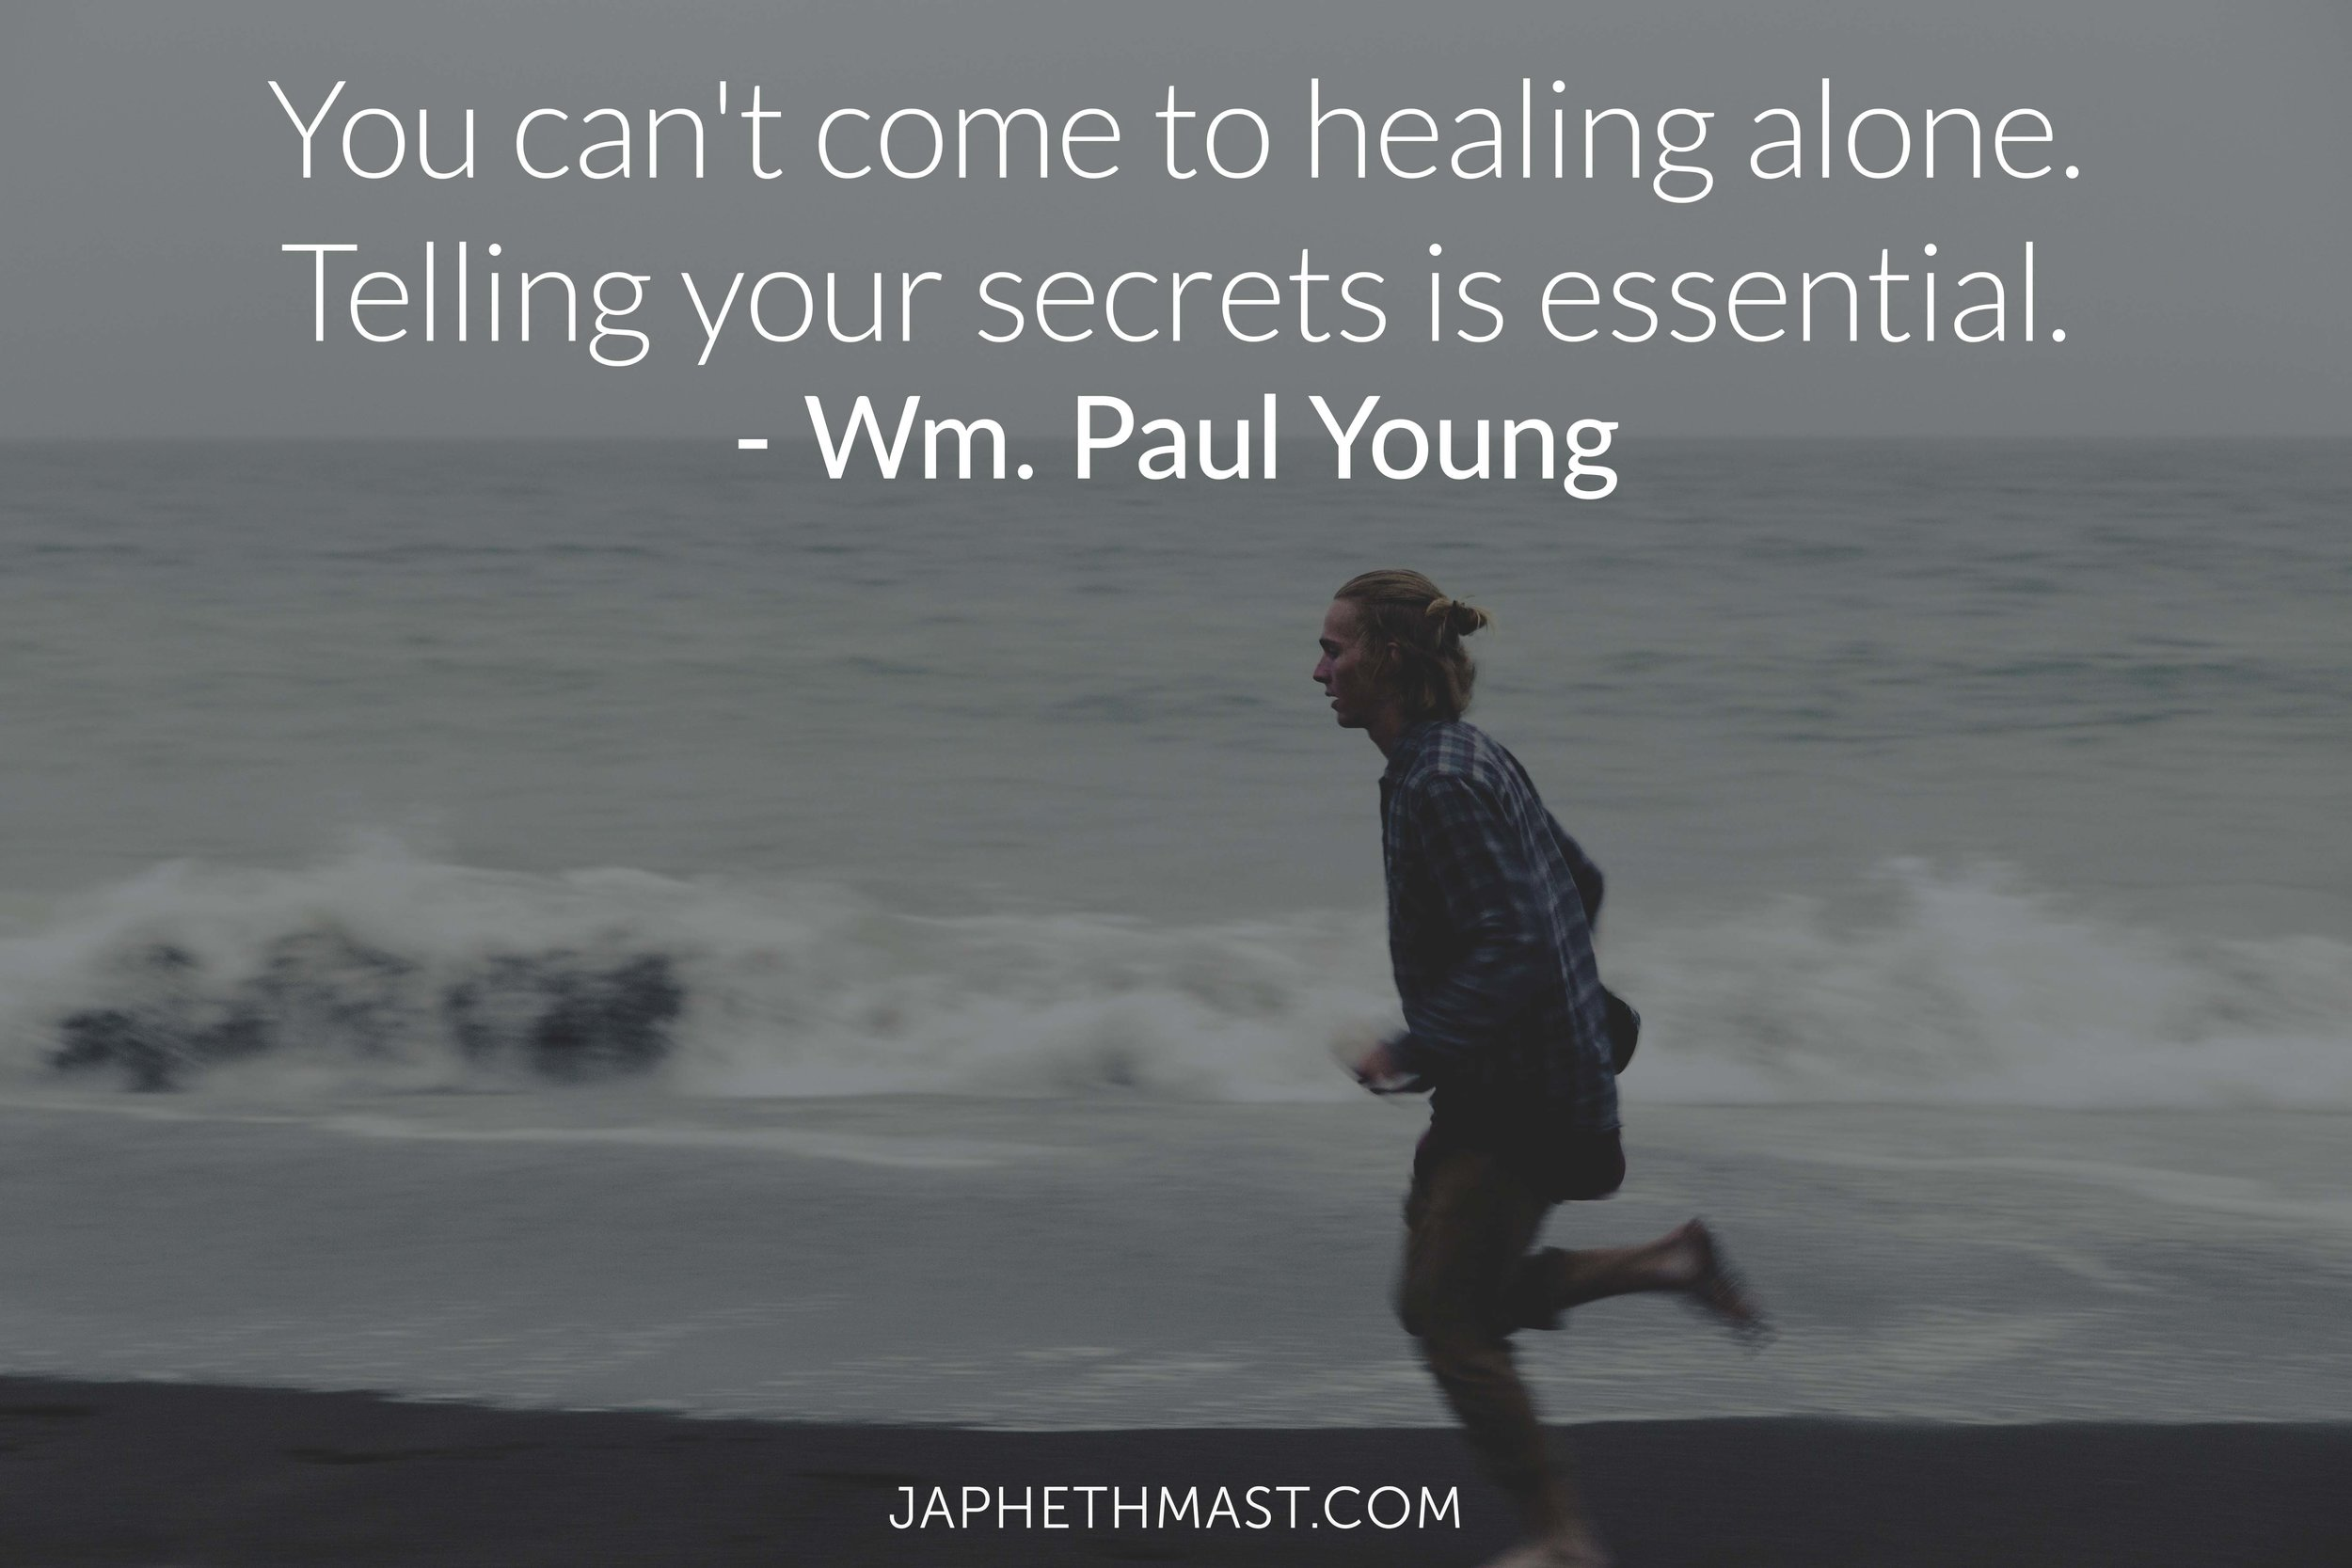 You can't come to healing alone. | Wm. Paul Young | Japheth Mast Blog